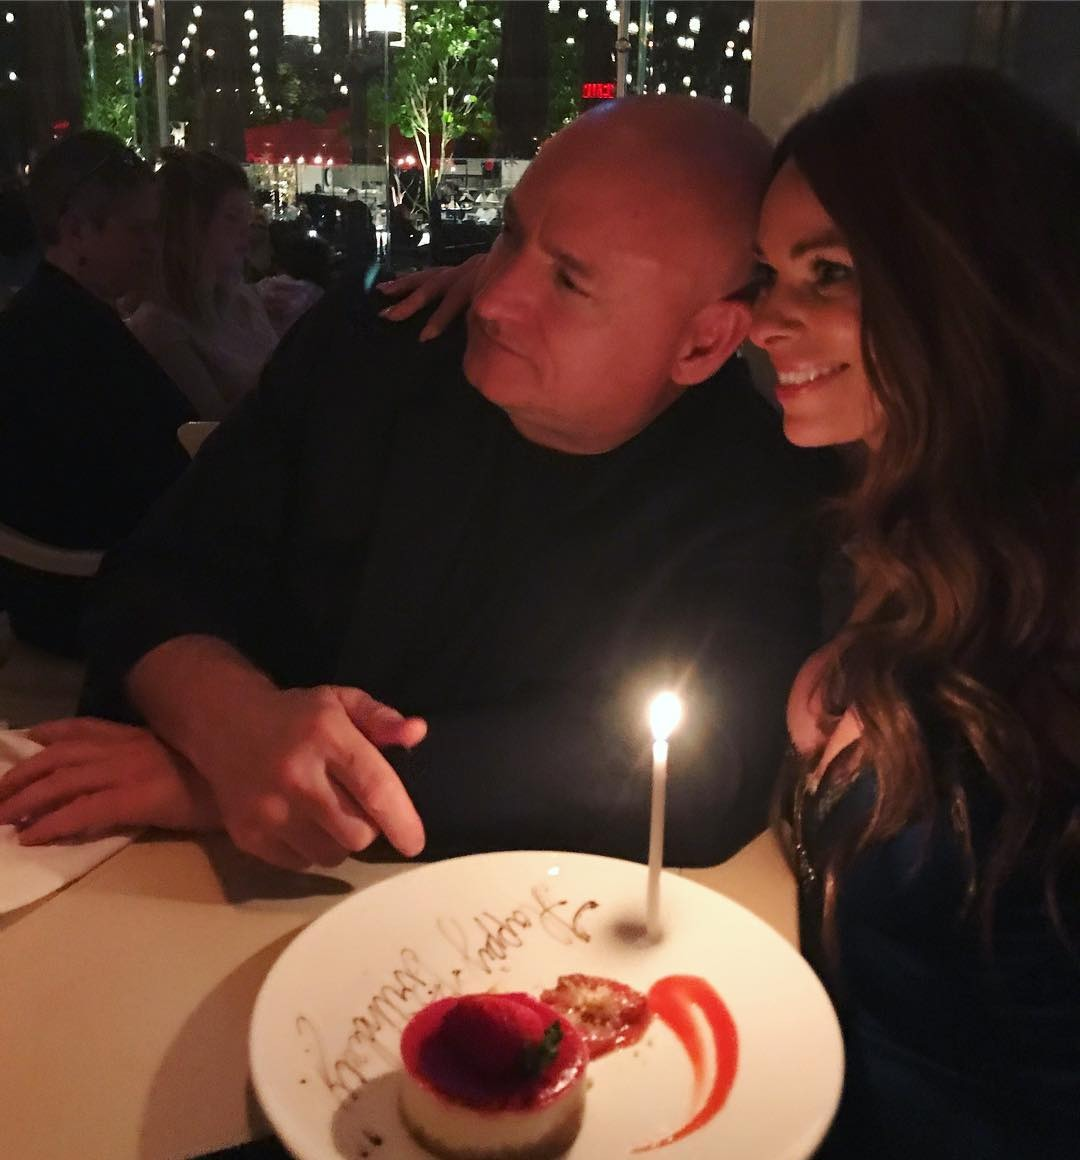 Amiko Kauderer's picture with her boyfriend Scott Kelly from the left profile. They are celebrating the birthday of Amiko.